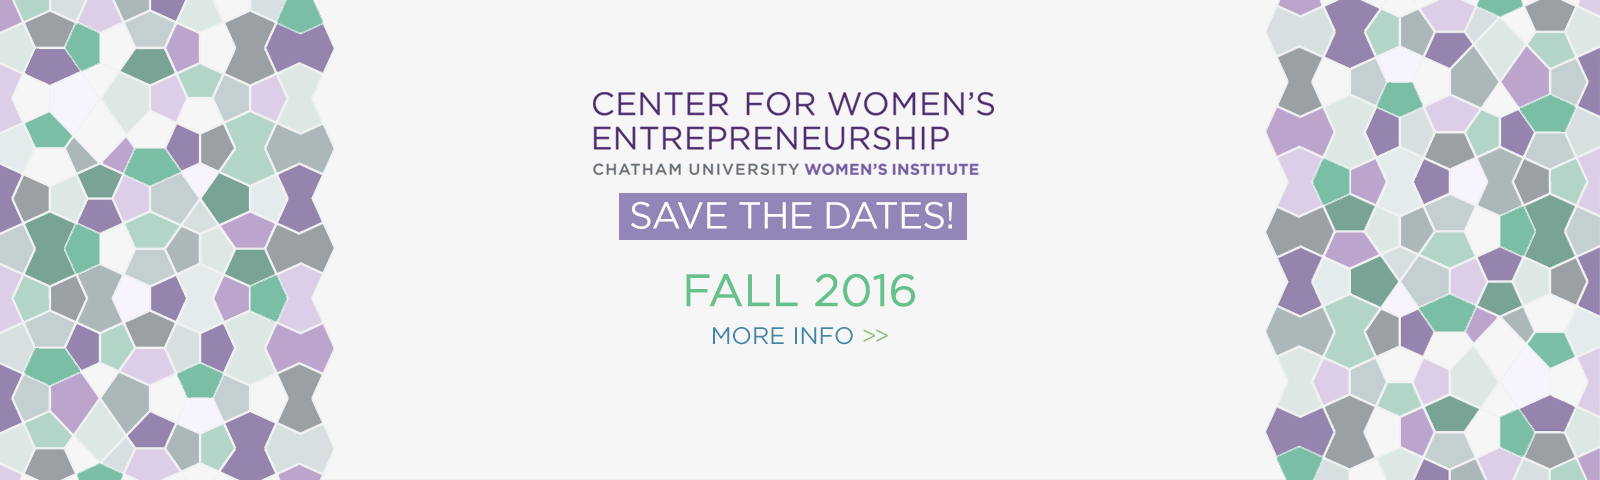 Save the Dates - Fall 2016